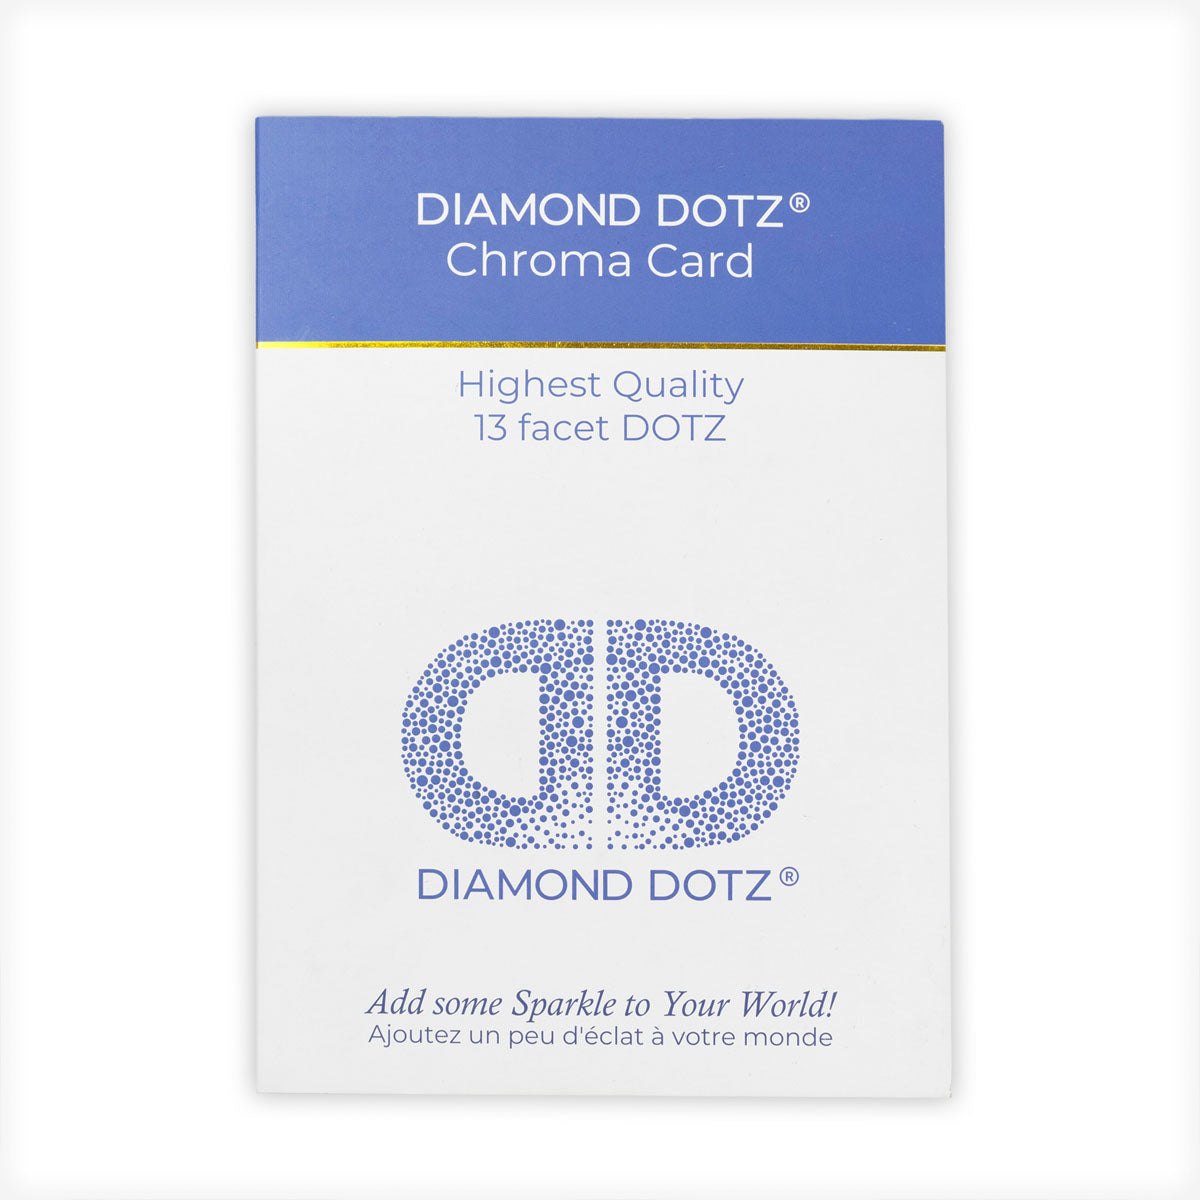 Diamond dotz chroma card lege kaart dot yourself diamond painting